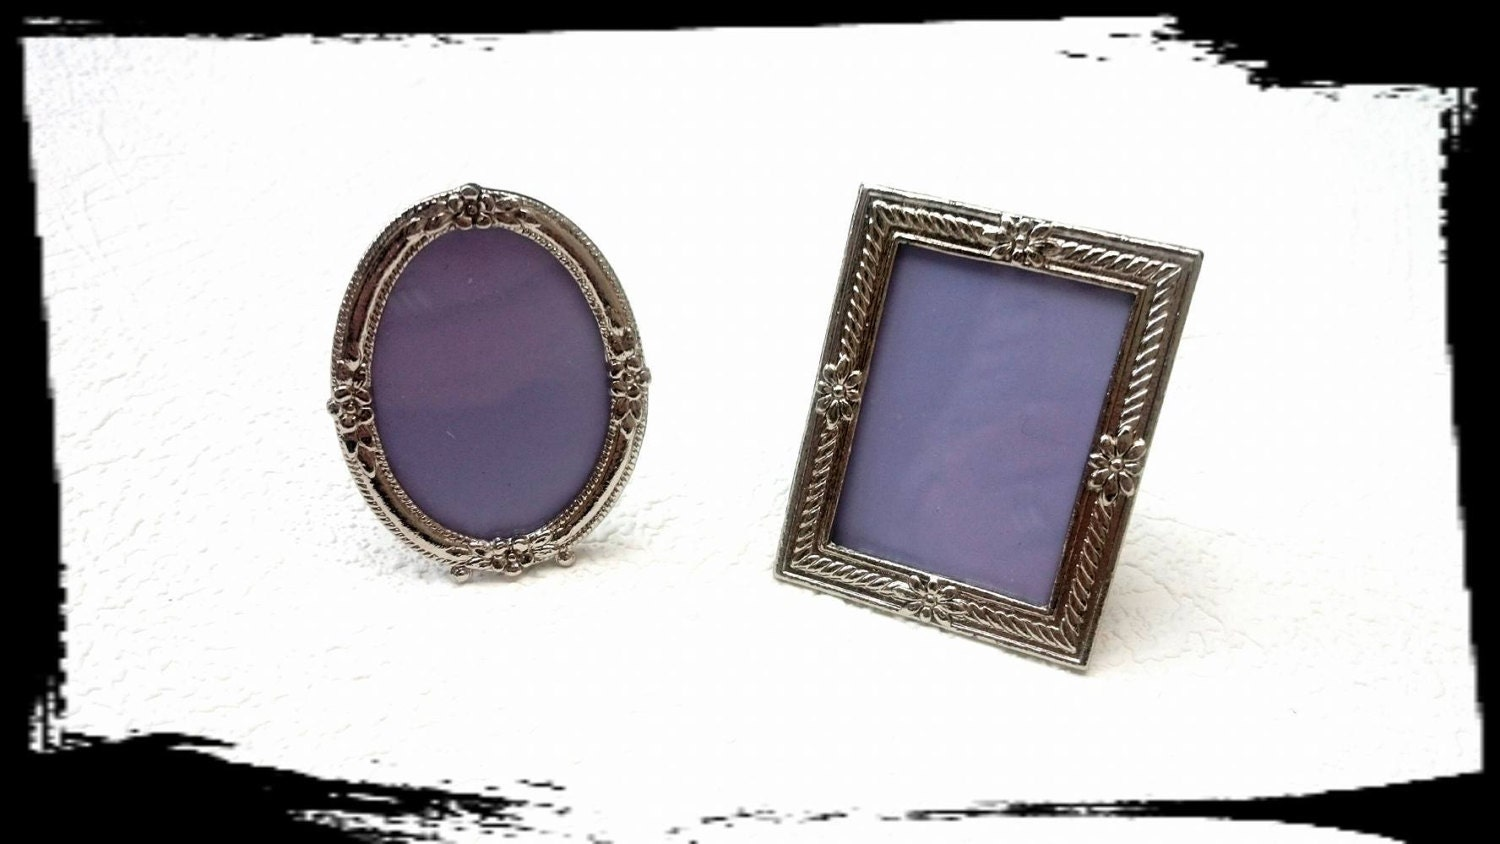 Two Miniature Photo Frames ,pocket photo,wedding, scrapbooking ...